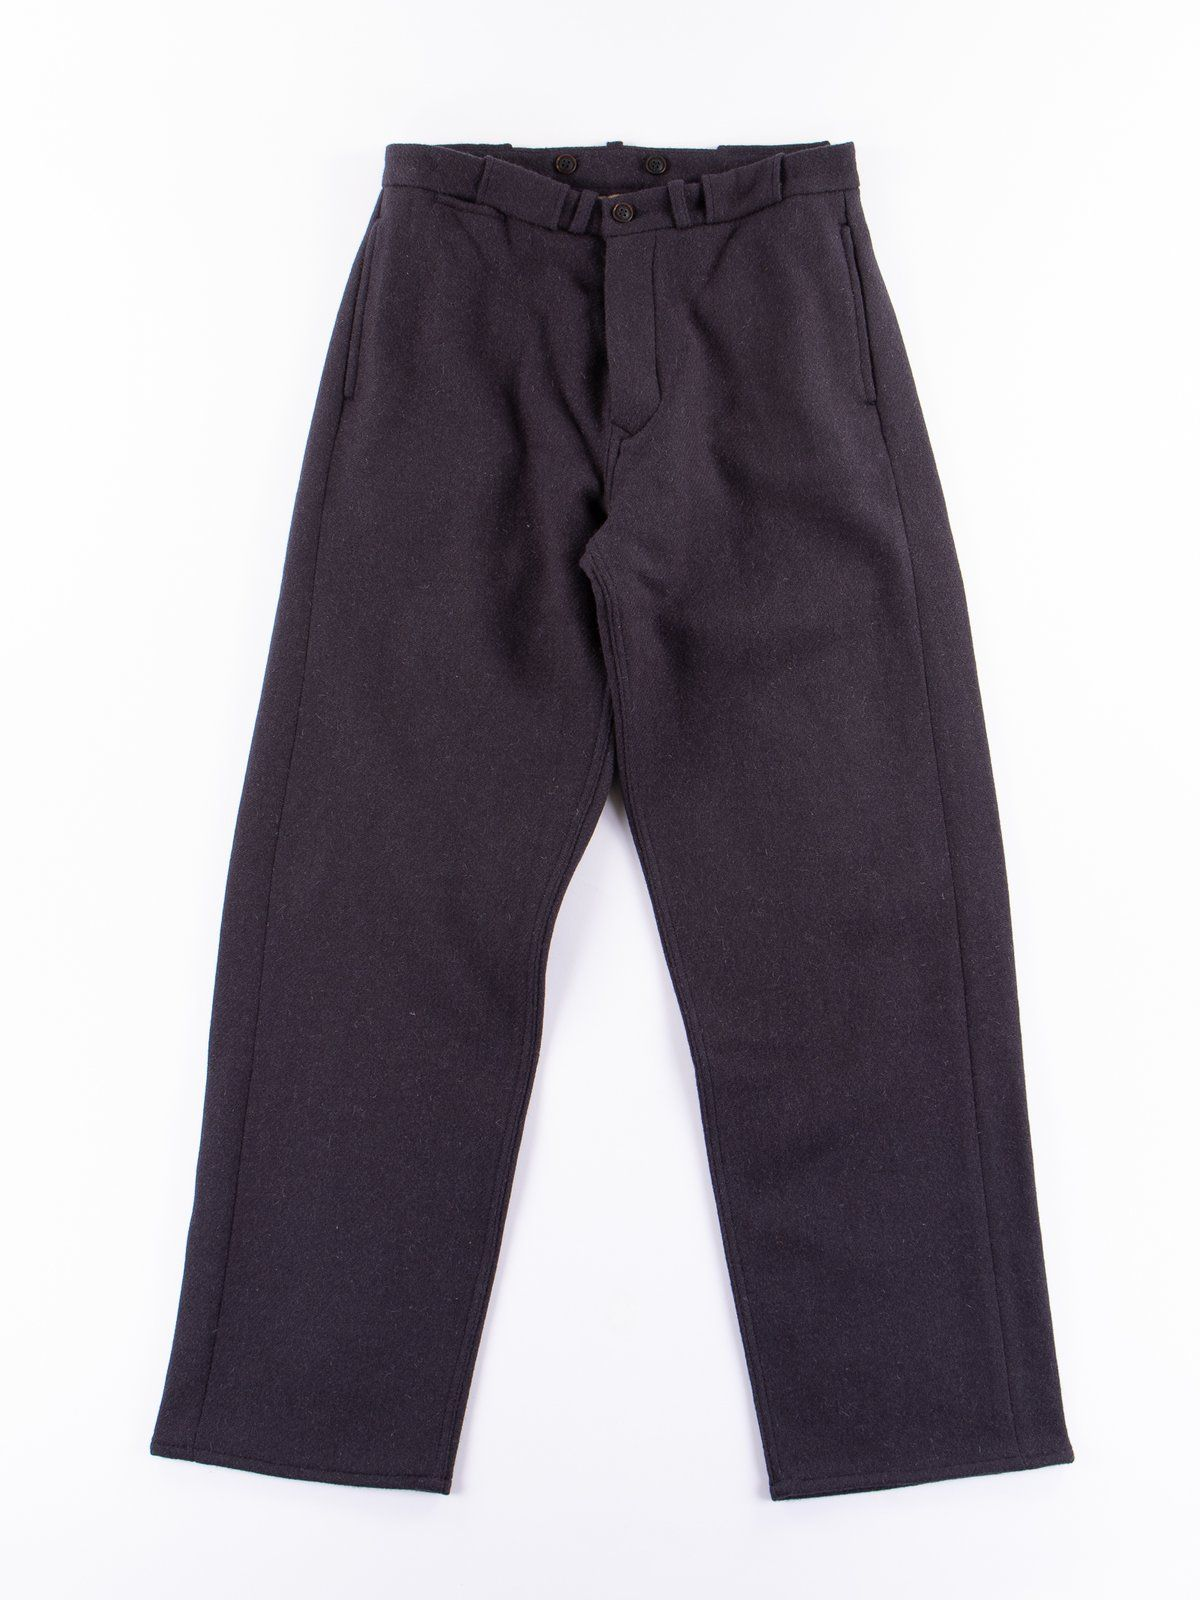 65f0cfc77d20 Buy Navy Harris Tweed PW Formal Pant by Nigel Cabourn online at The Bureau  Belfast with